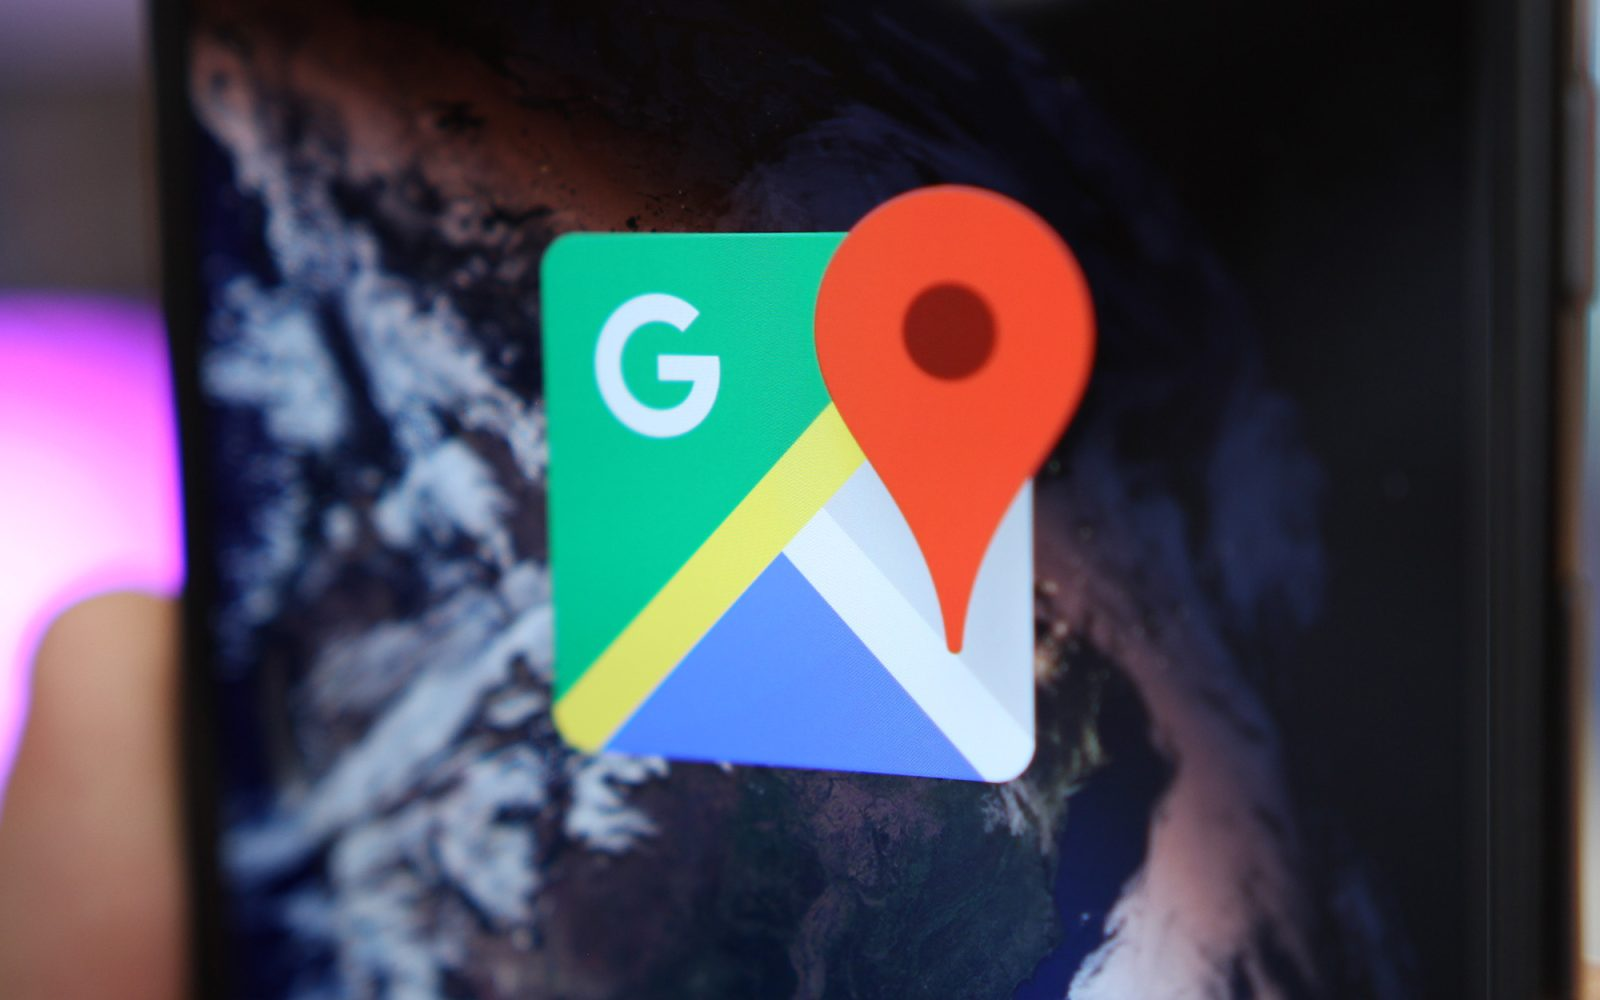 Google Map Maker officially shut down on March 31st